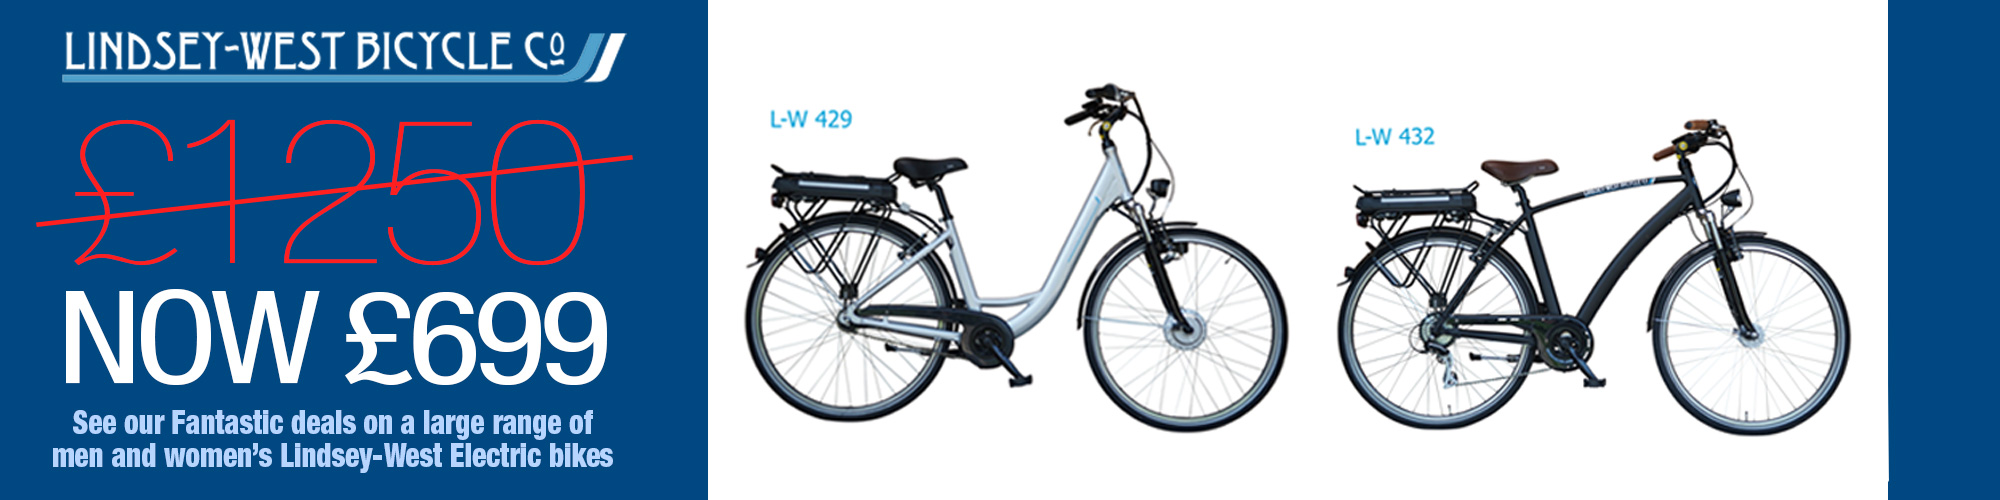 Lindsey-Wst Bicycle Co Electric Bike Now £699